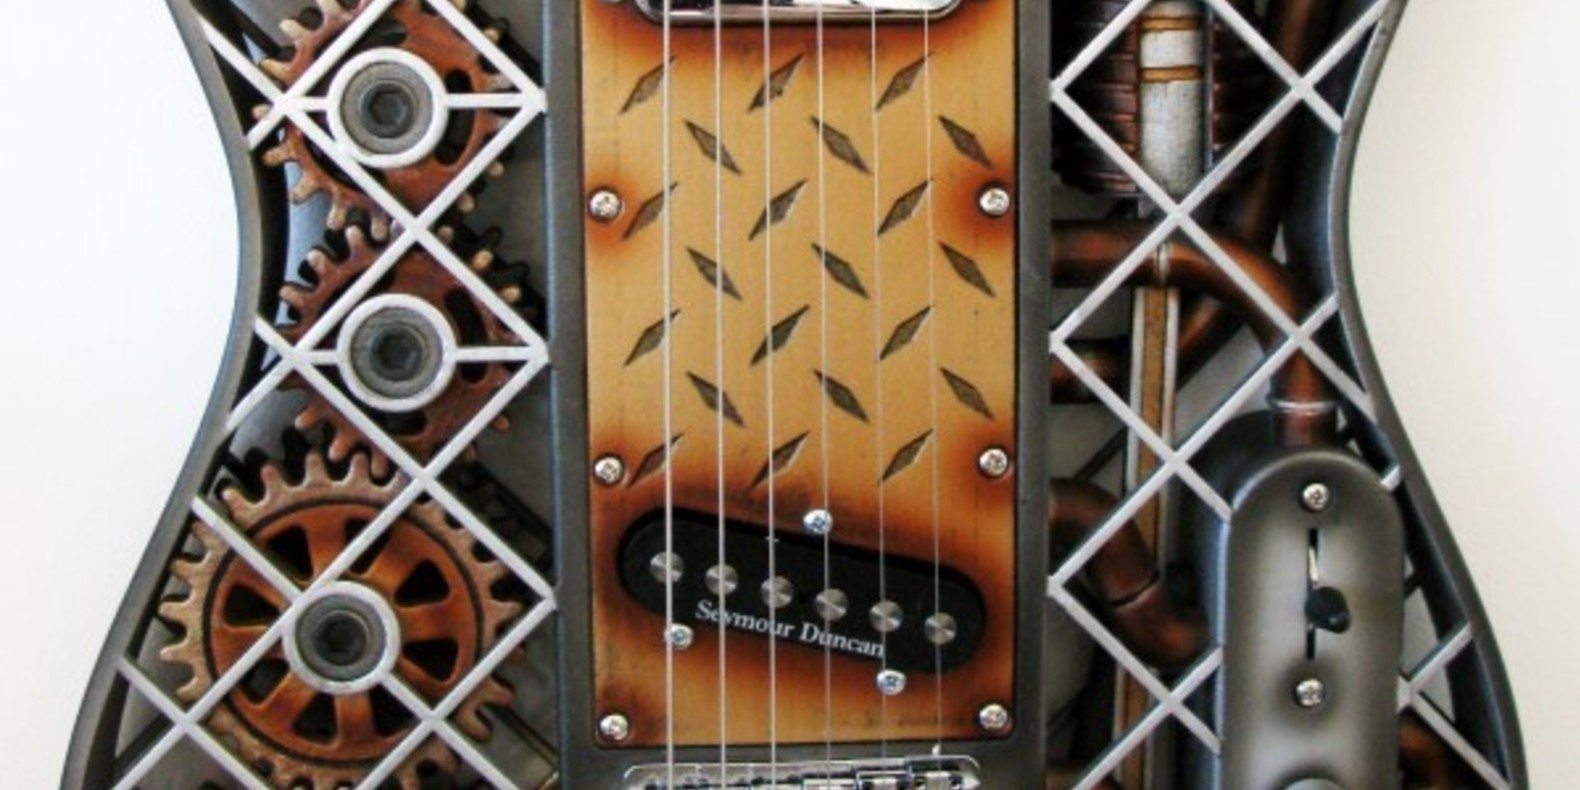 A steampunk guitar printed in 3D